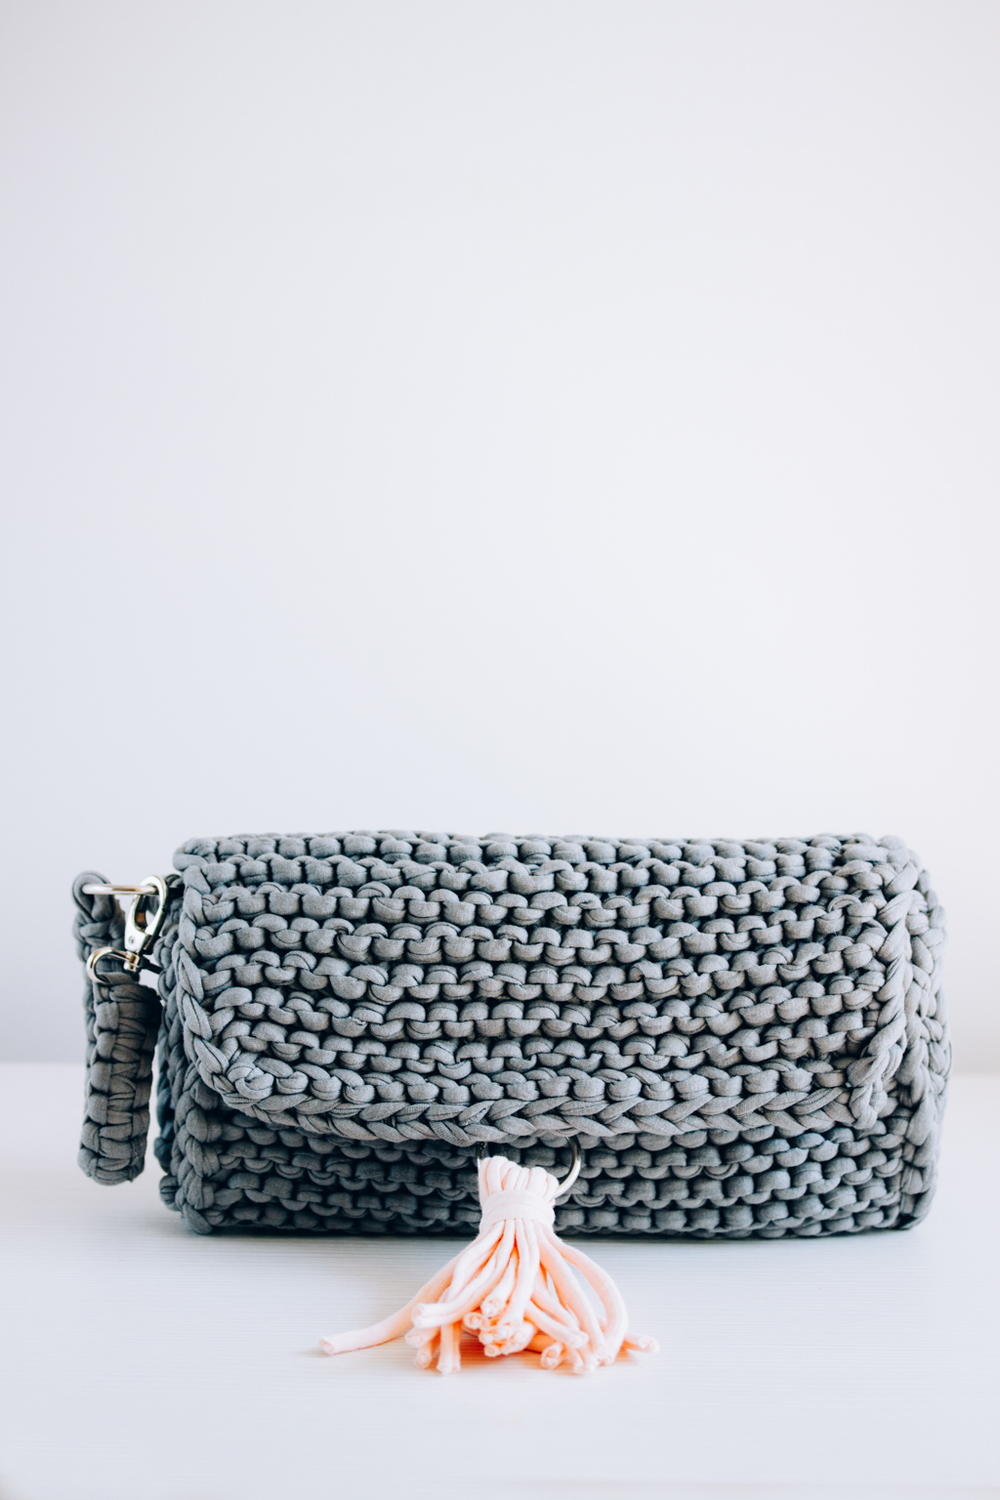 Knitted Clutch Bag Pattern : Perfect Knitted Clutch AllFreeKnitting.com